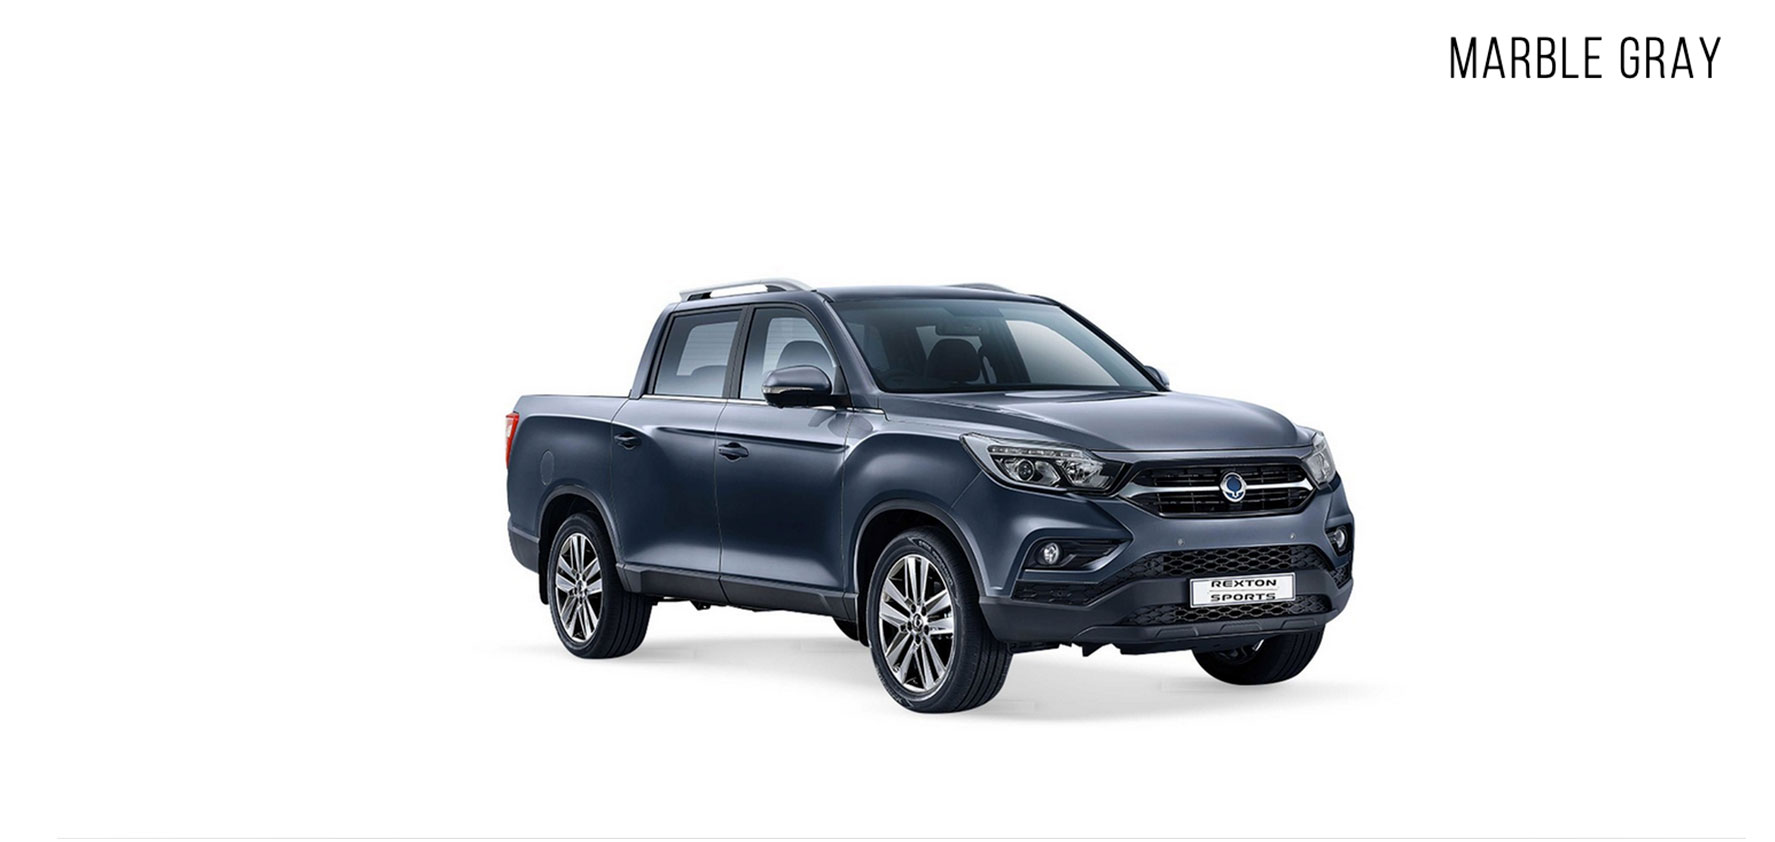 1-marble-gray-rexton-sports-ssangyong-vercelli